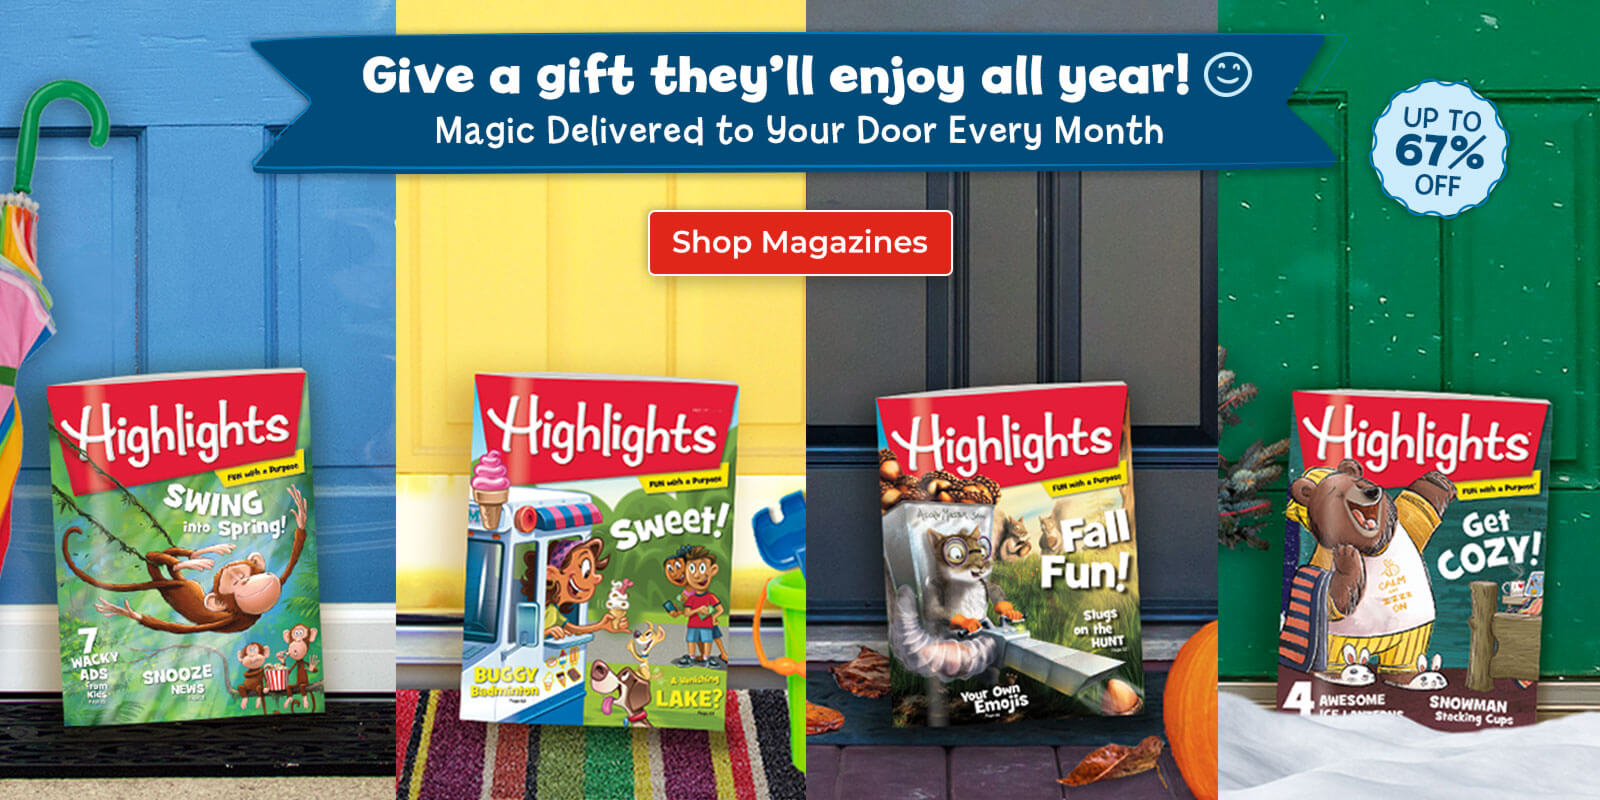 Shop Highlights magazines and nurture kids' curiosity, creativity, caring and confidence.